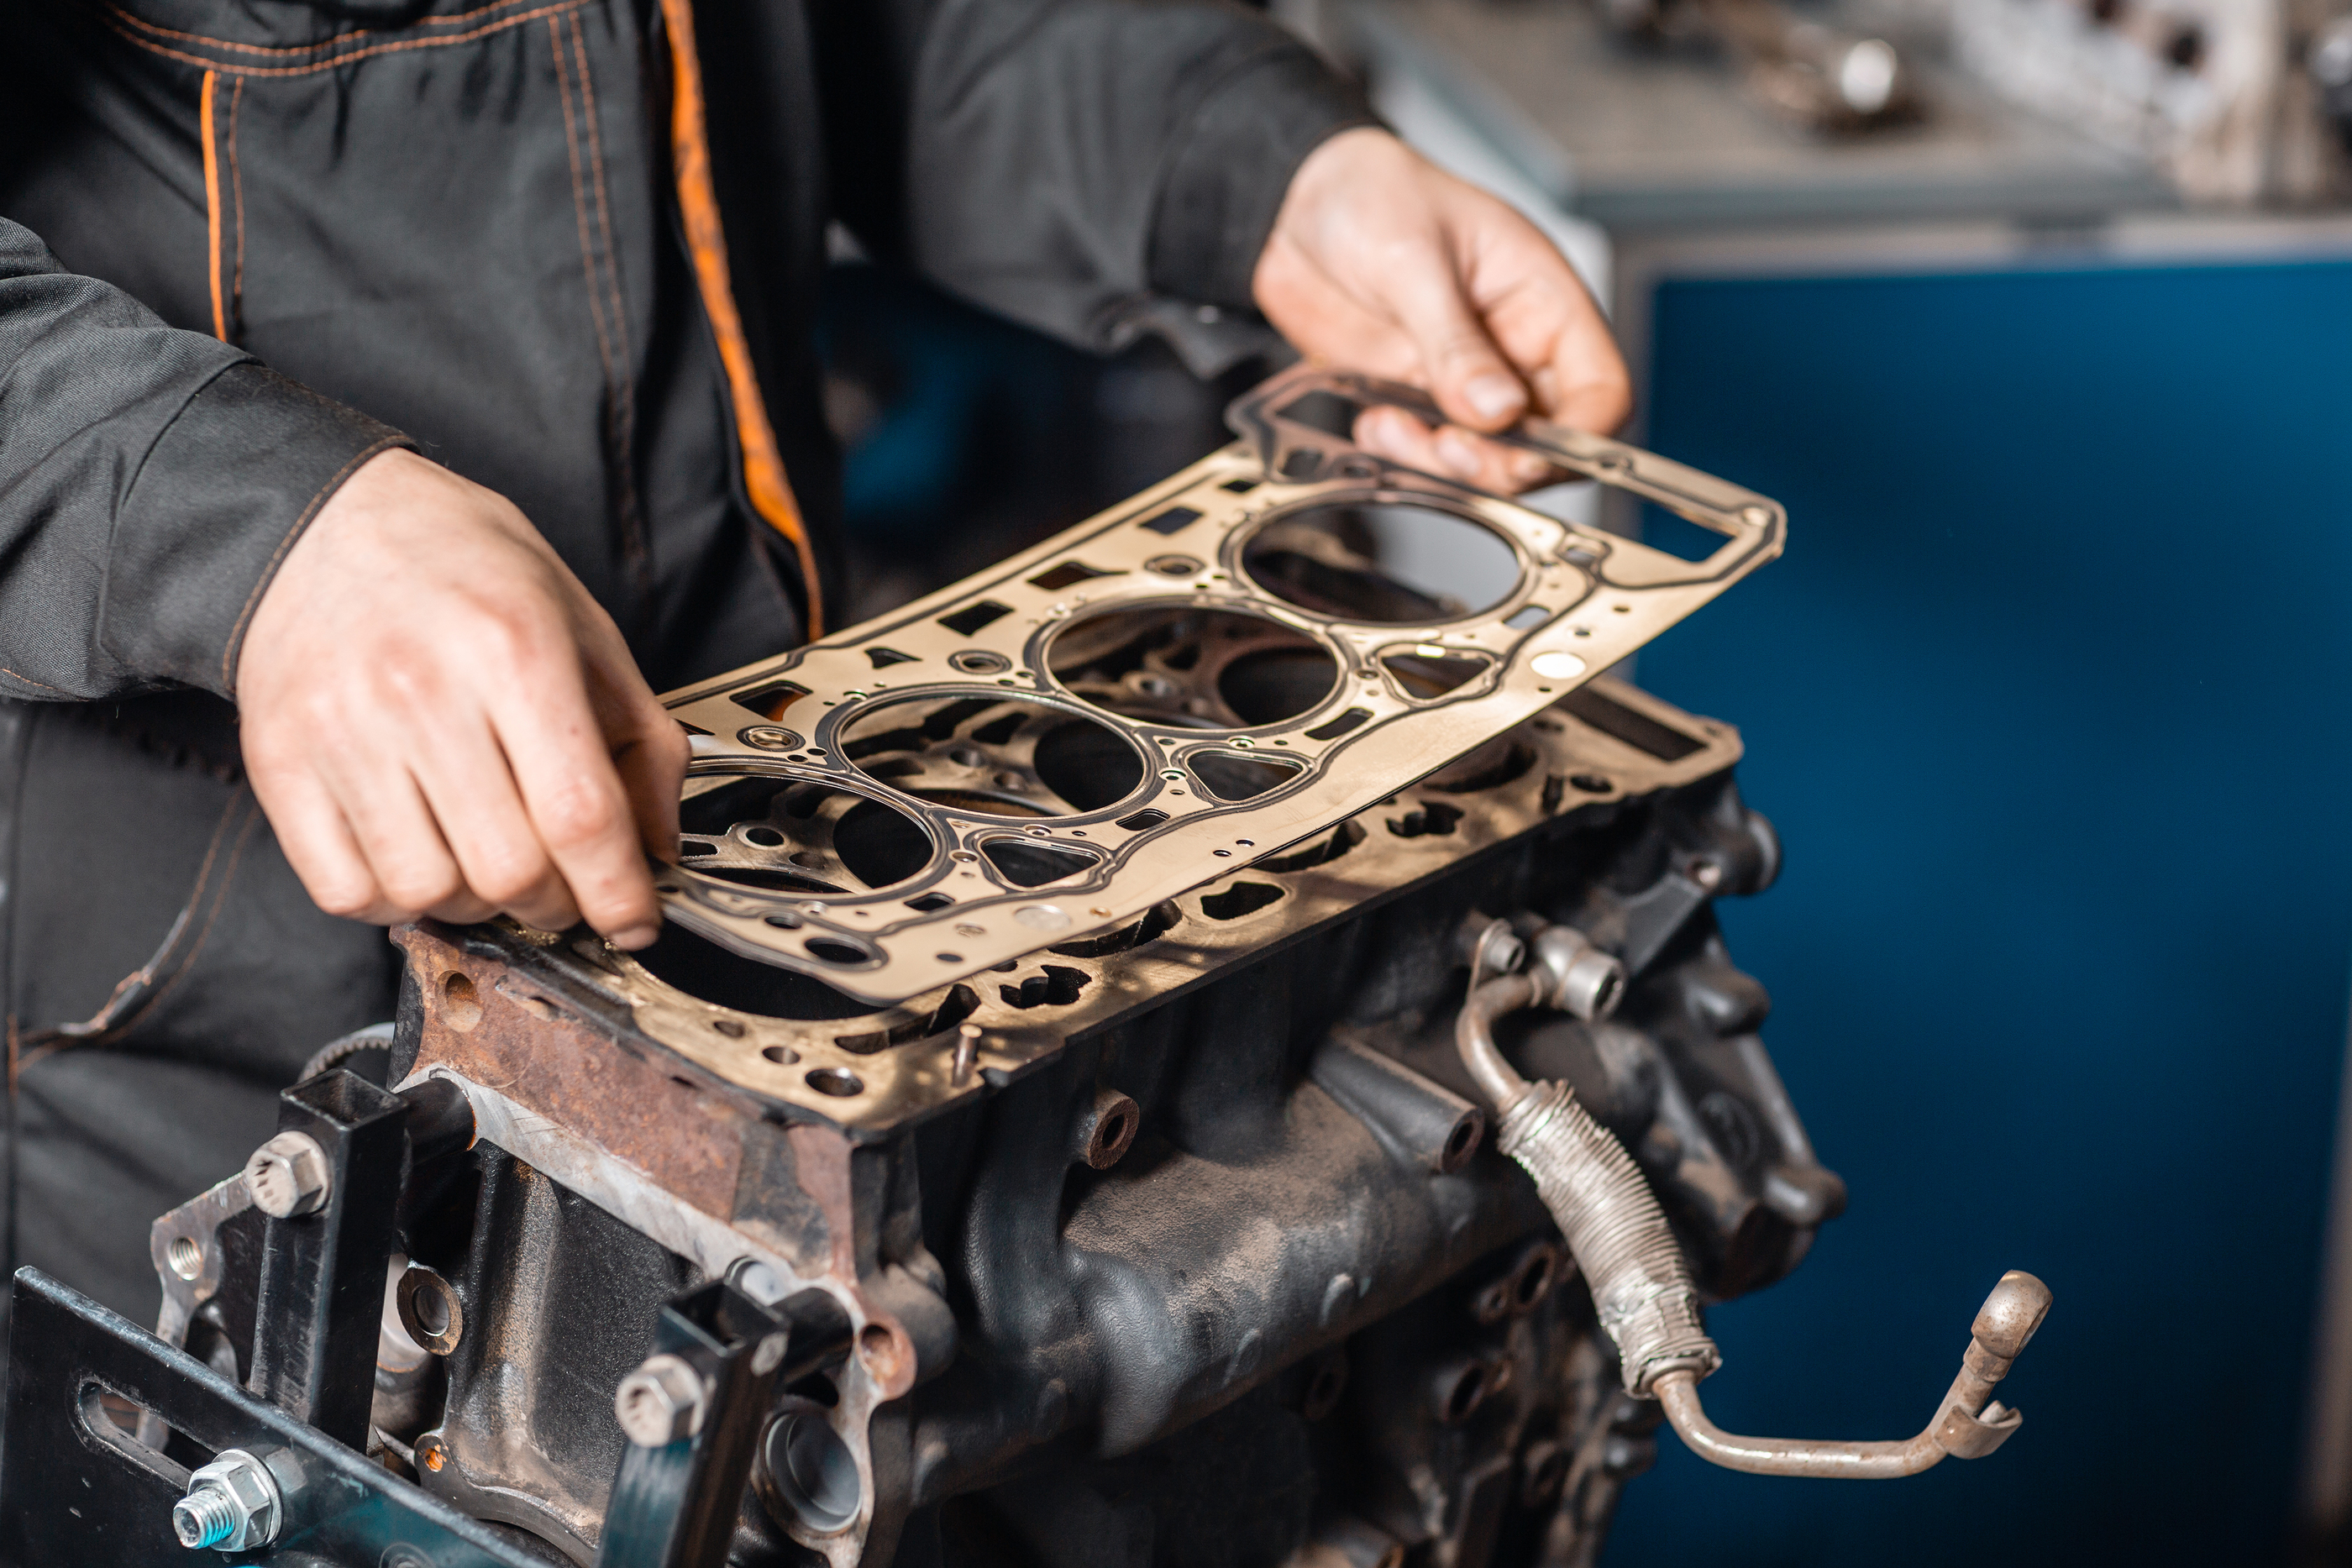 Head Gasket Repair Cost – How Much Does It Cost to Replace a Headgasket?